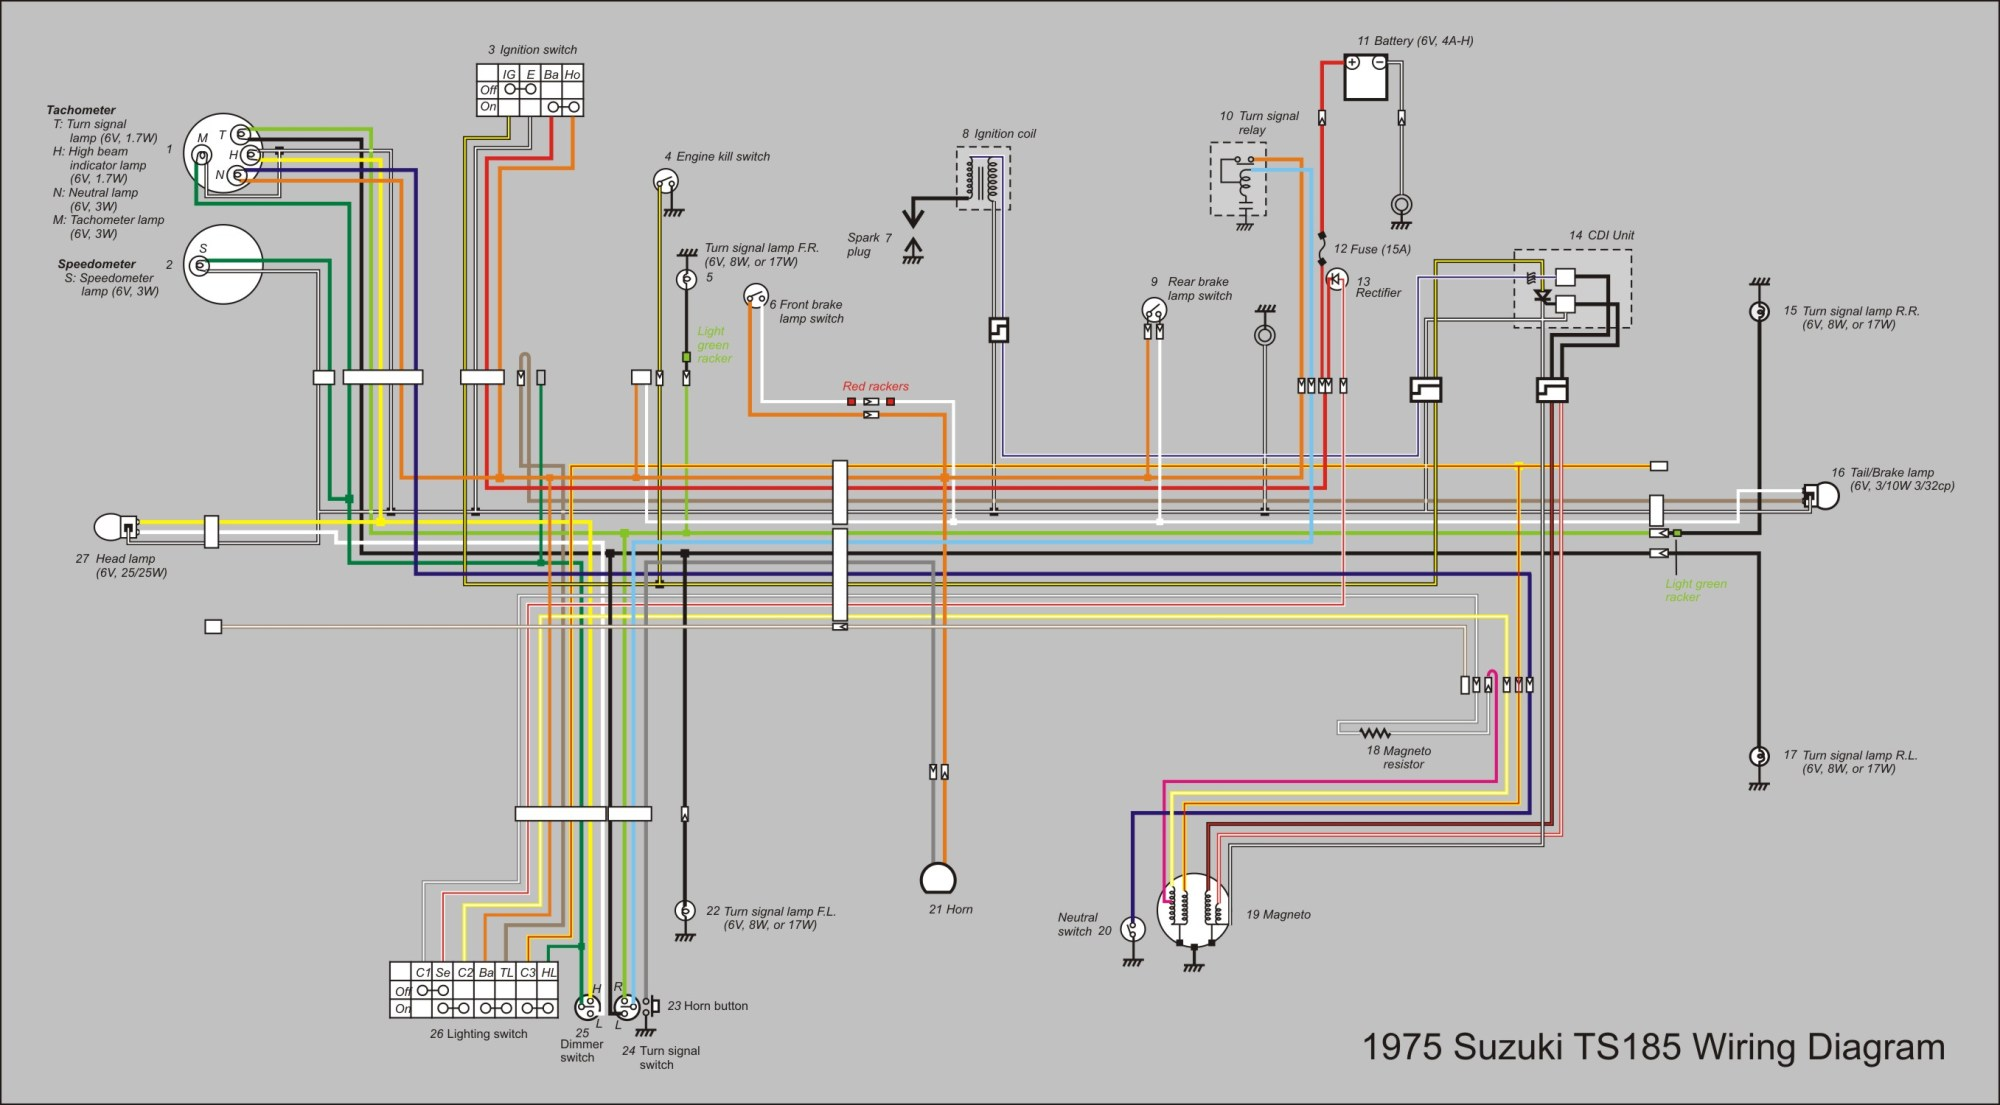 hight resolution of file ts185 wiring diagram new jpg wikimedia commons file ts185 wiring diagram new jpg